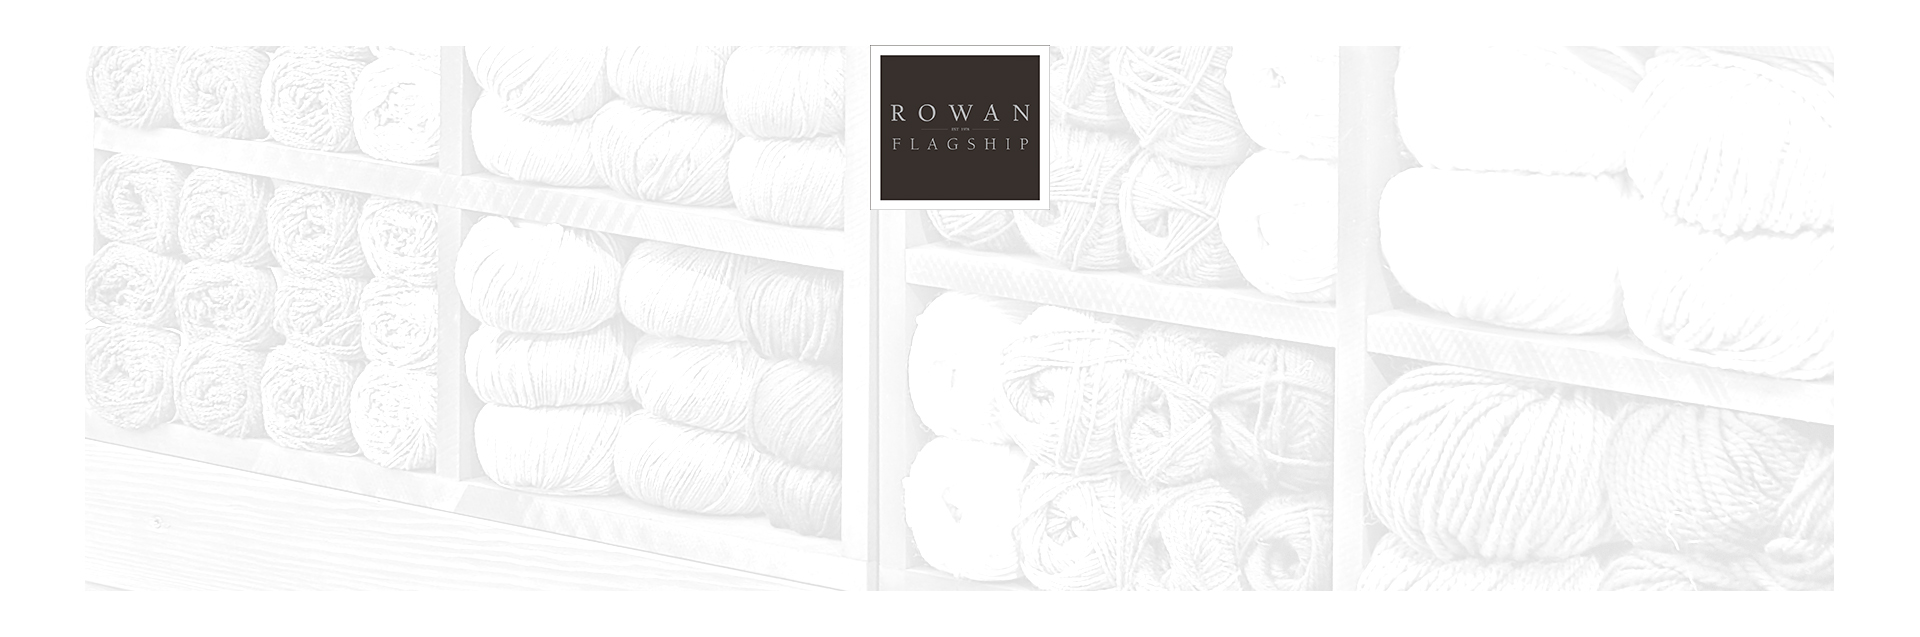 Our store offers a range of the best European and world manufacturers of yarn, tools and accessories for knitting and crocheting. We also give regular master classes in various knitting techniques and arrange annual shows of knitted and crocheted projects on International Knitting Day.